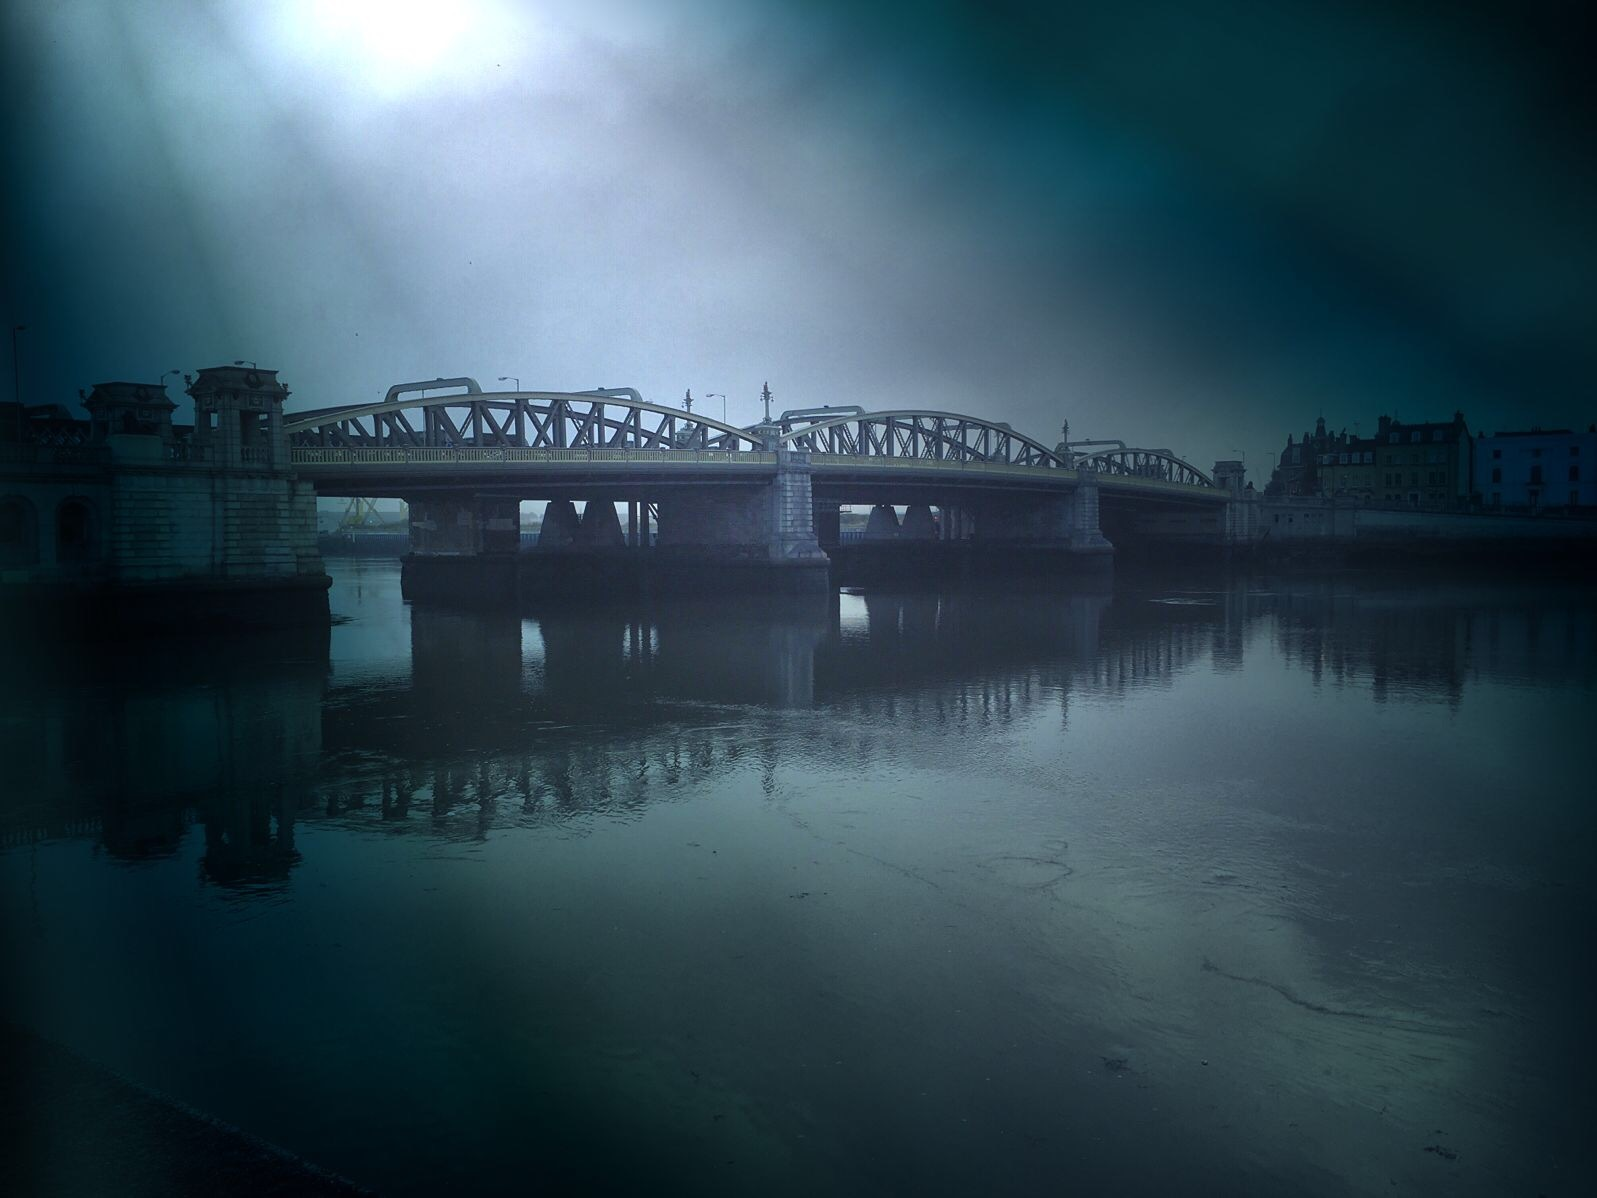 Rochester Bridge at Sunrise by Photographer Gino Cinganelli